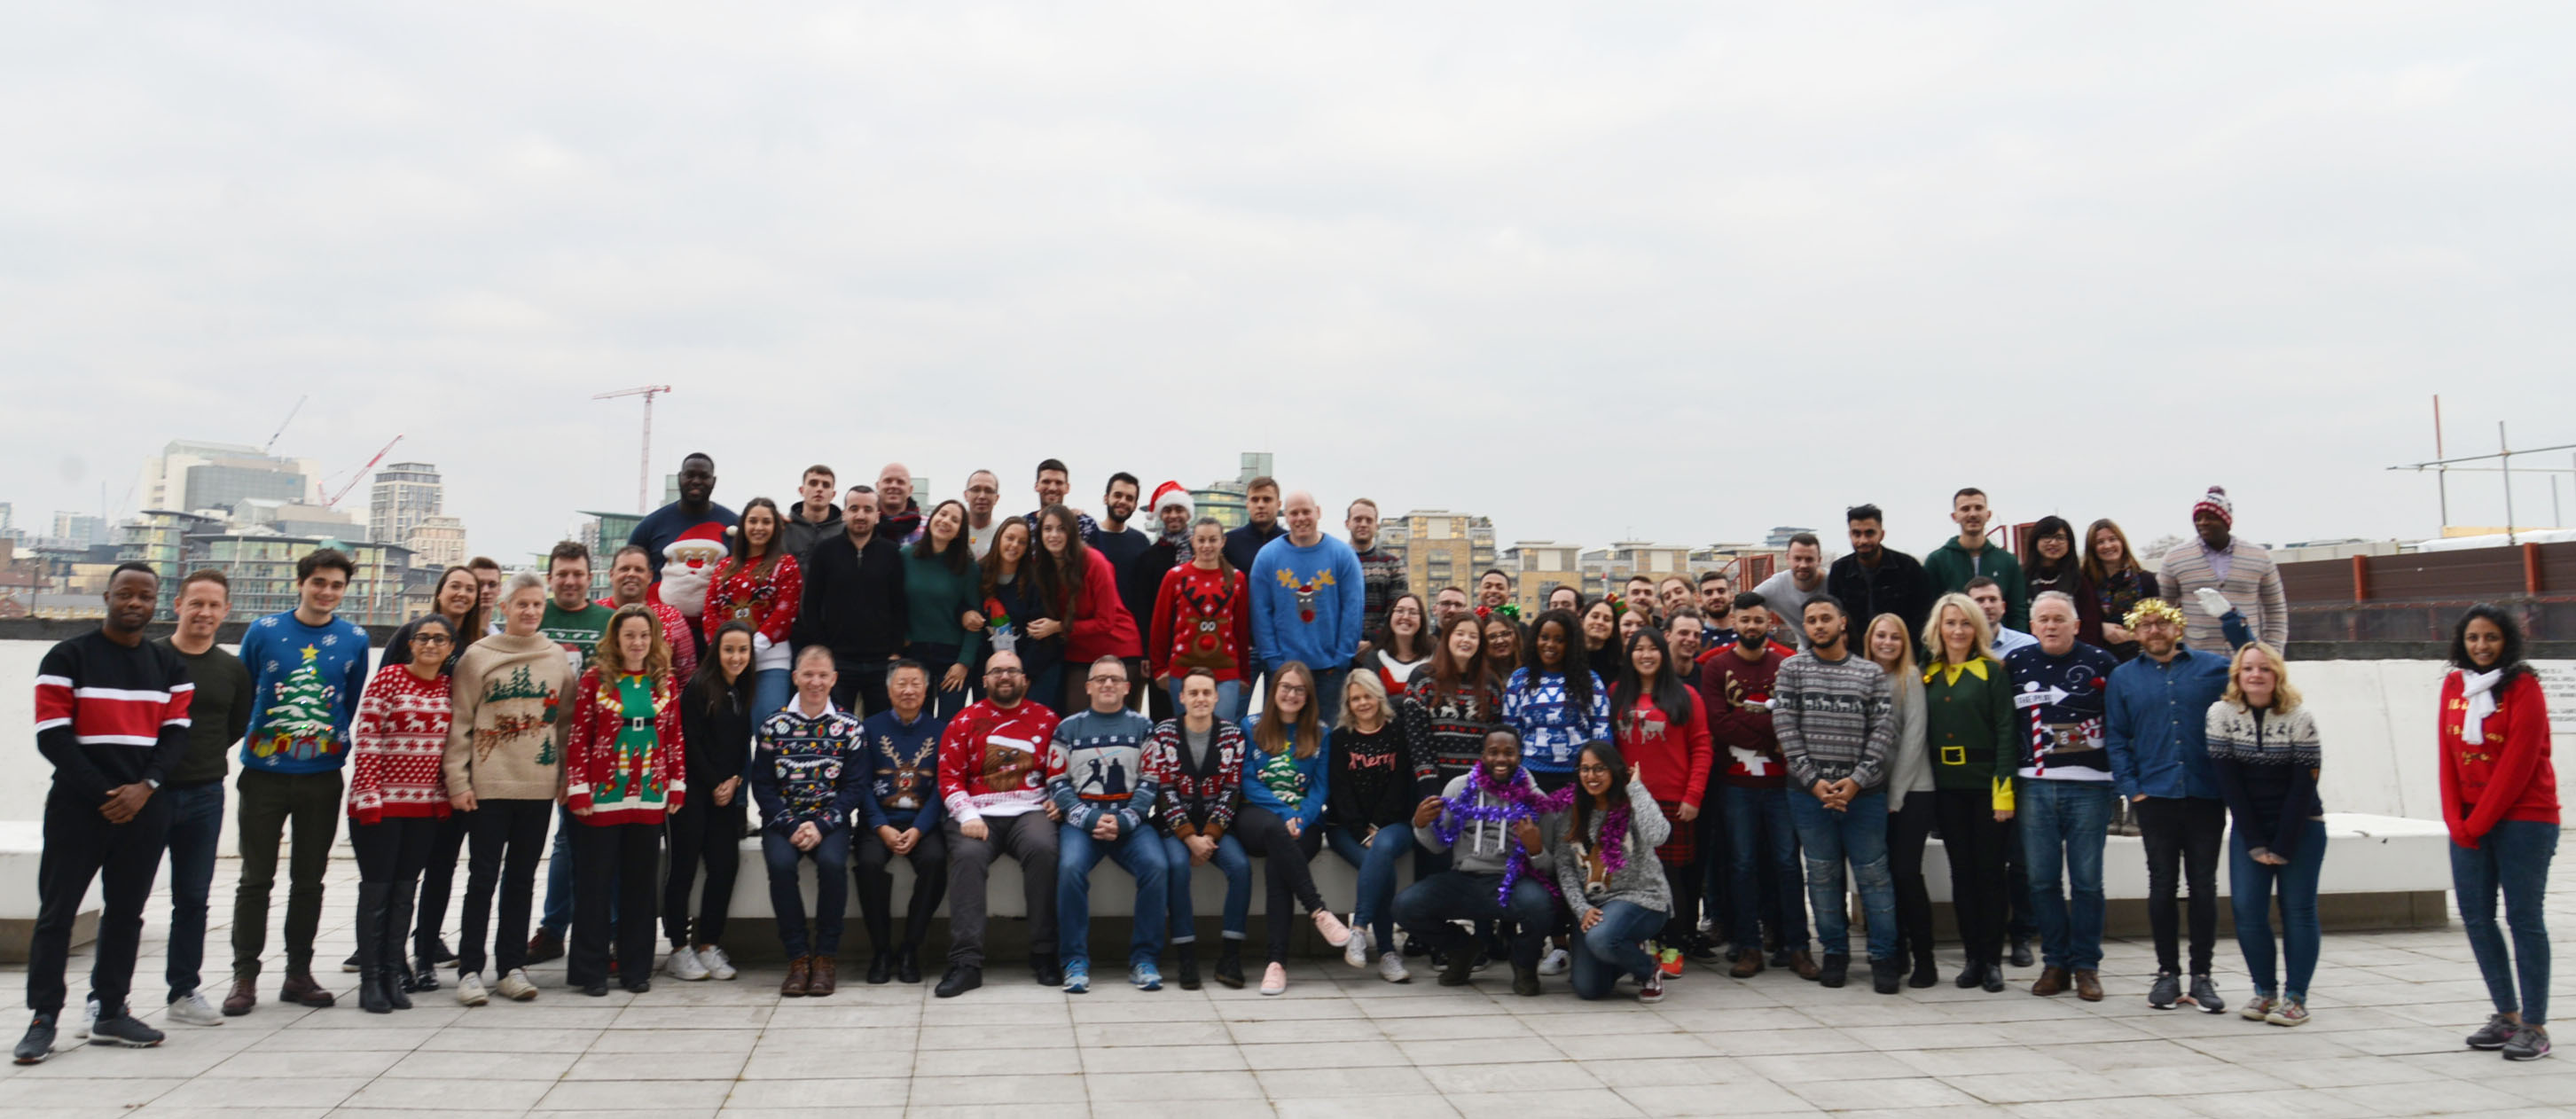 Christmas jumper day - save the children